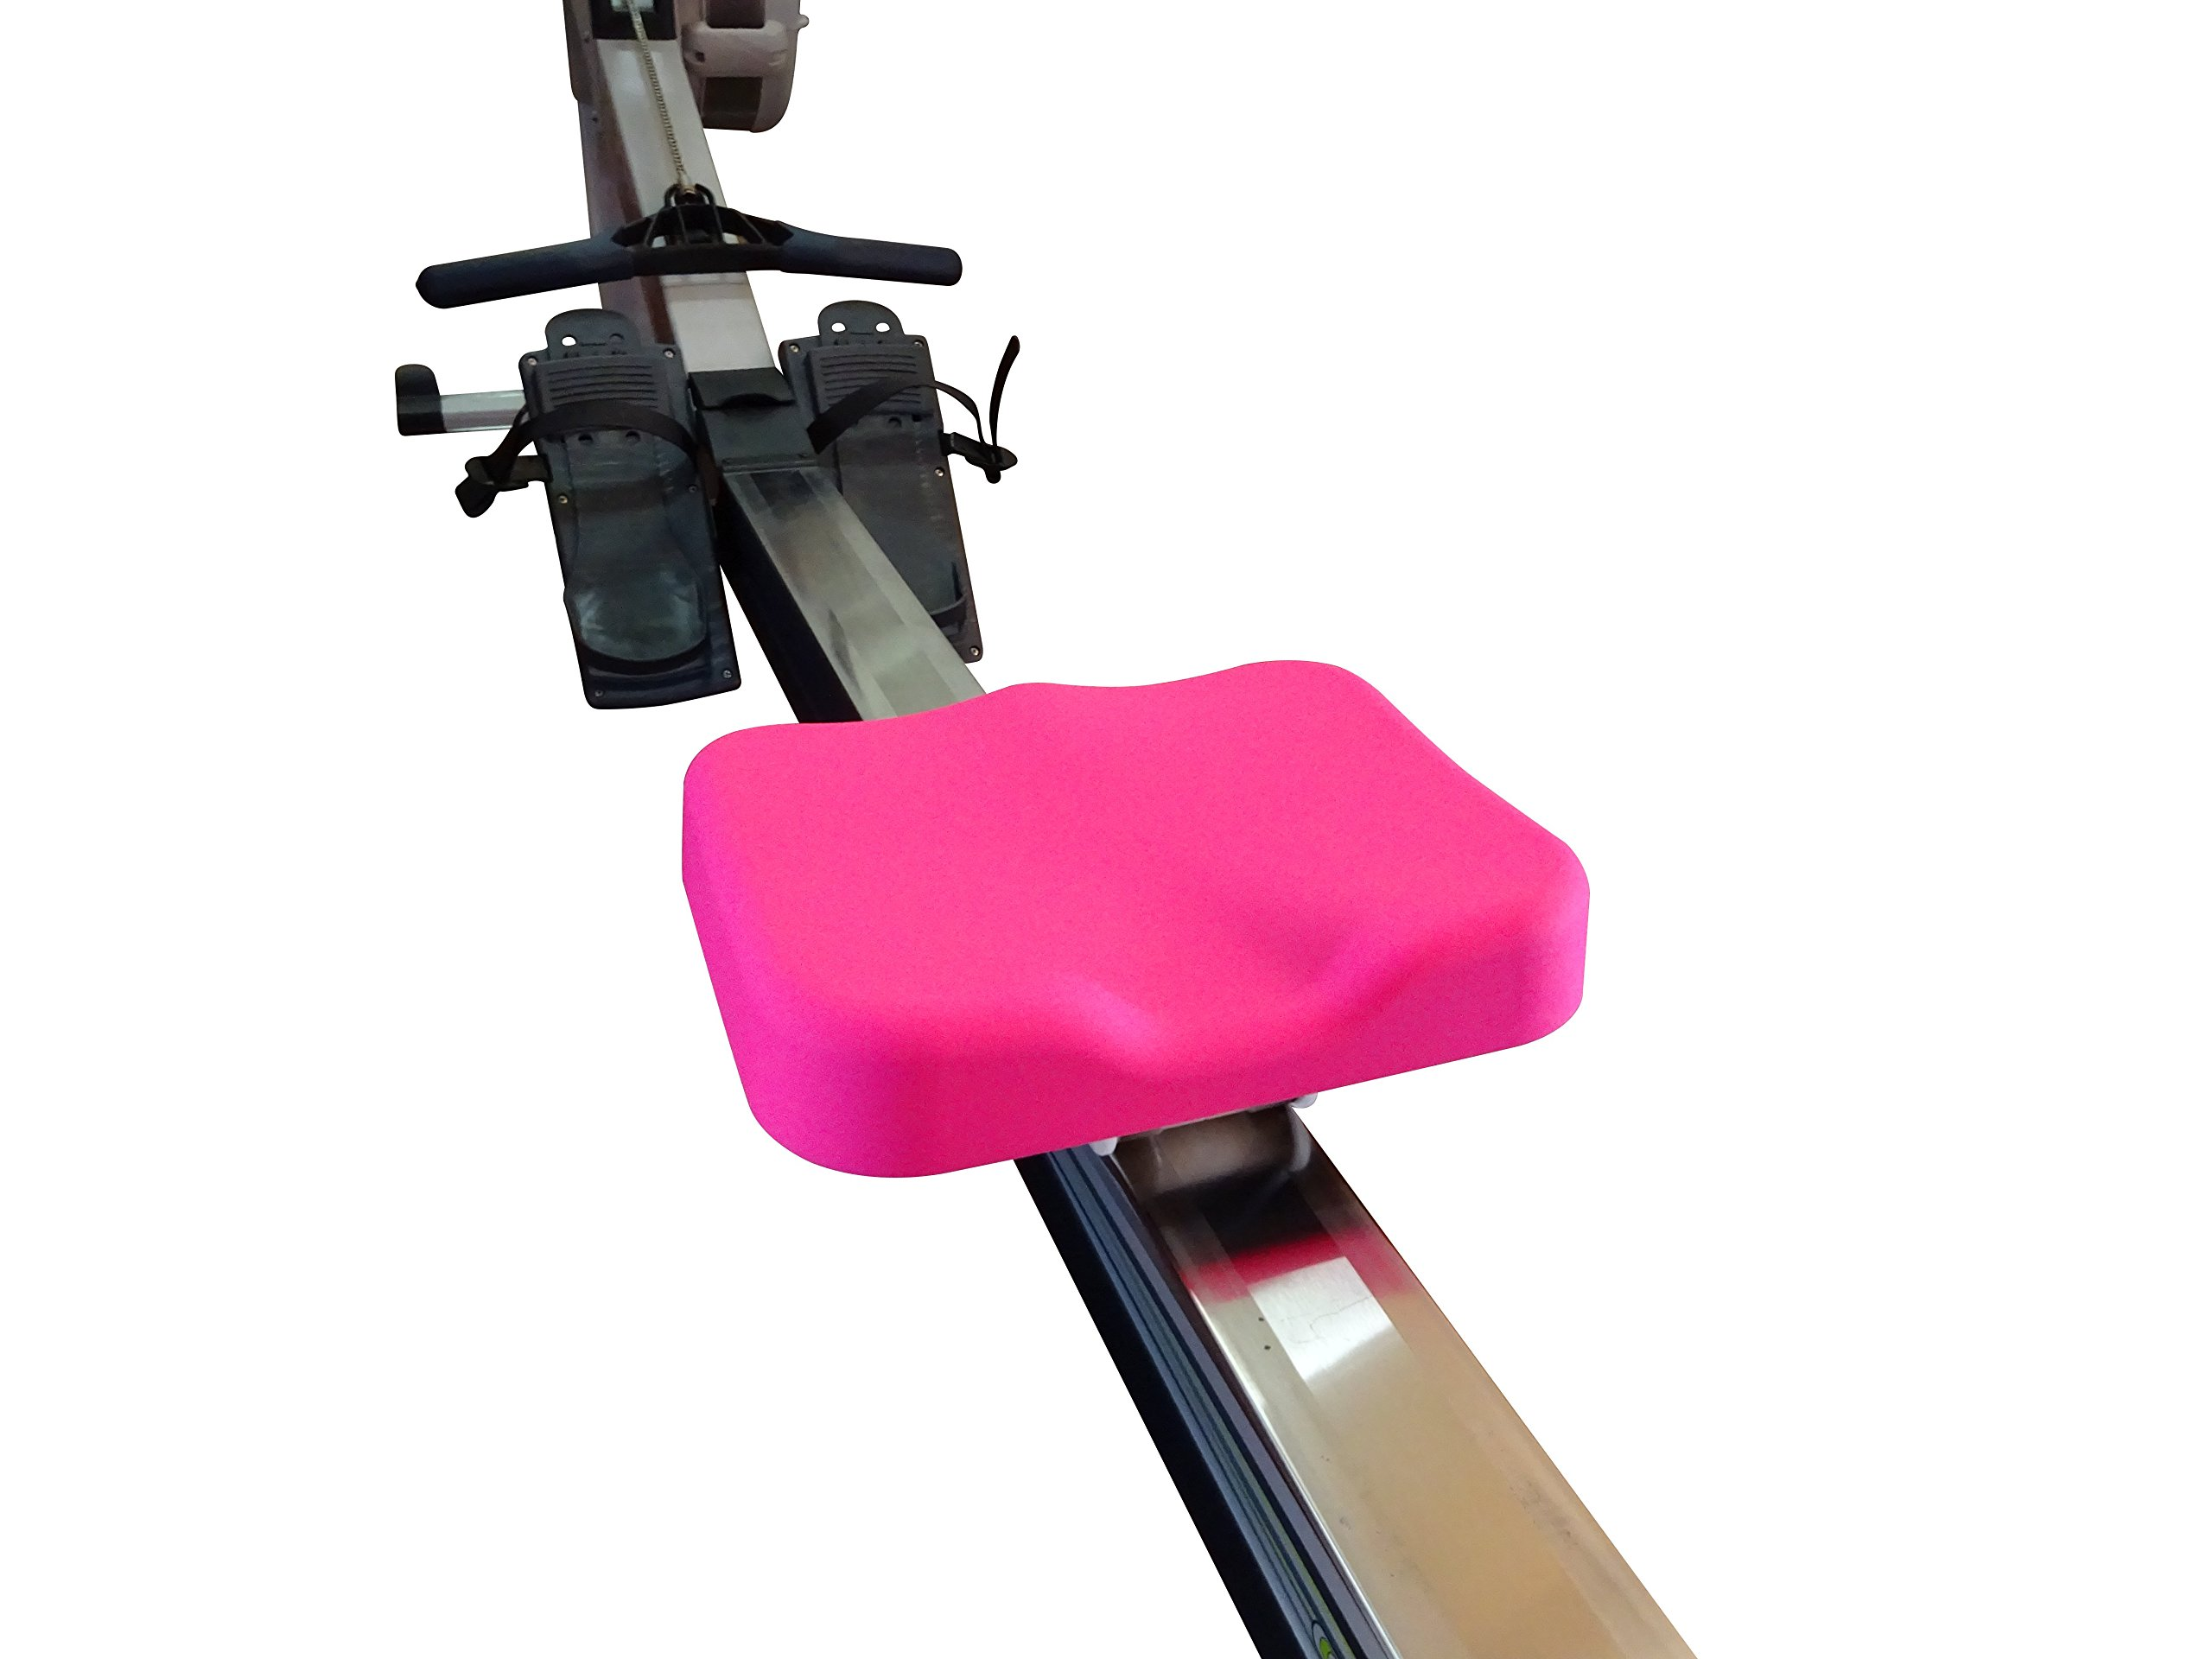 Vapor Fitness Rowing Machine Seat Cover by designed for the Concept 2 rowing machine